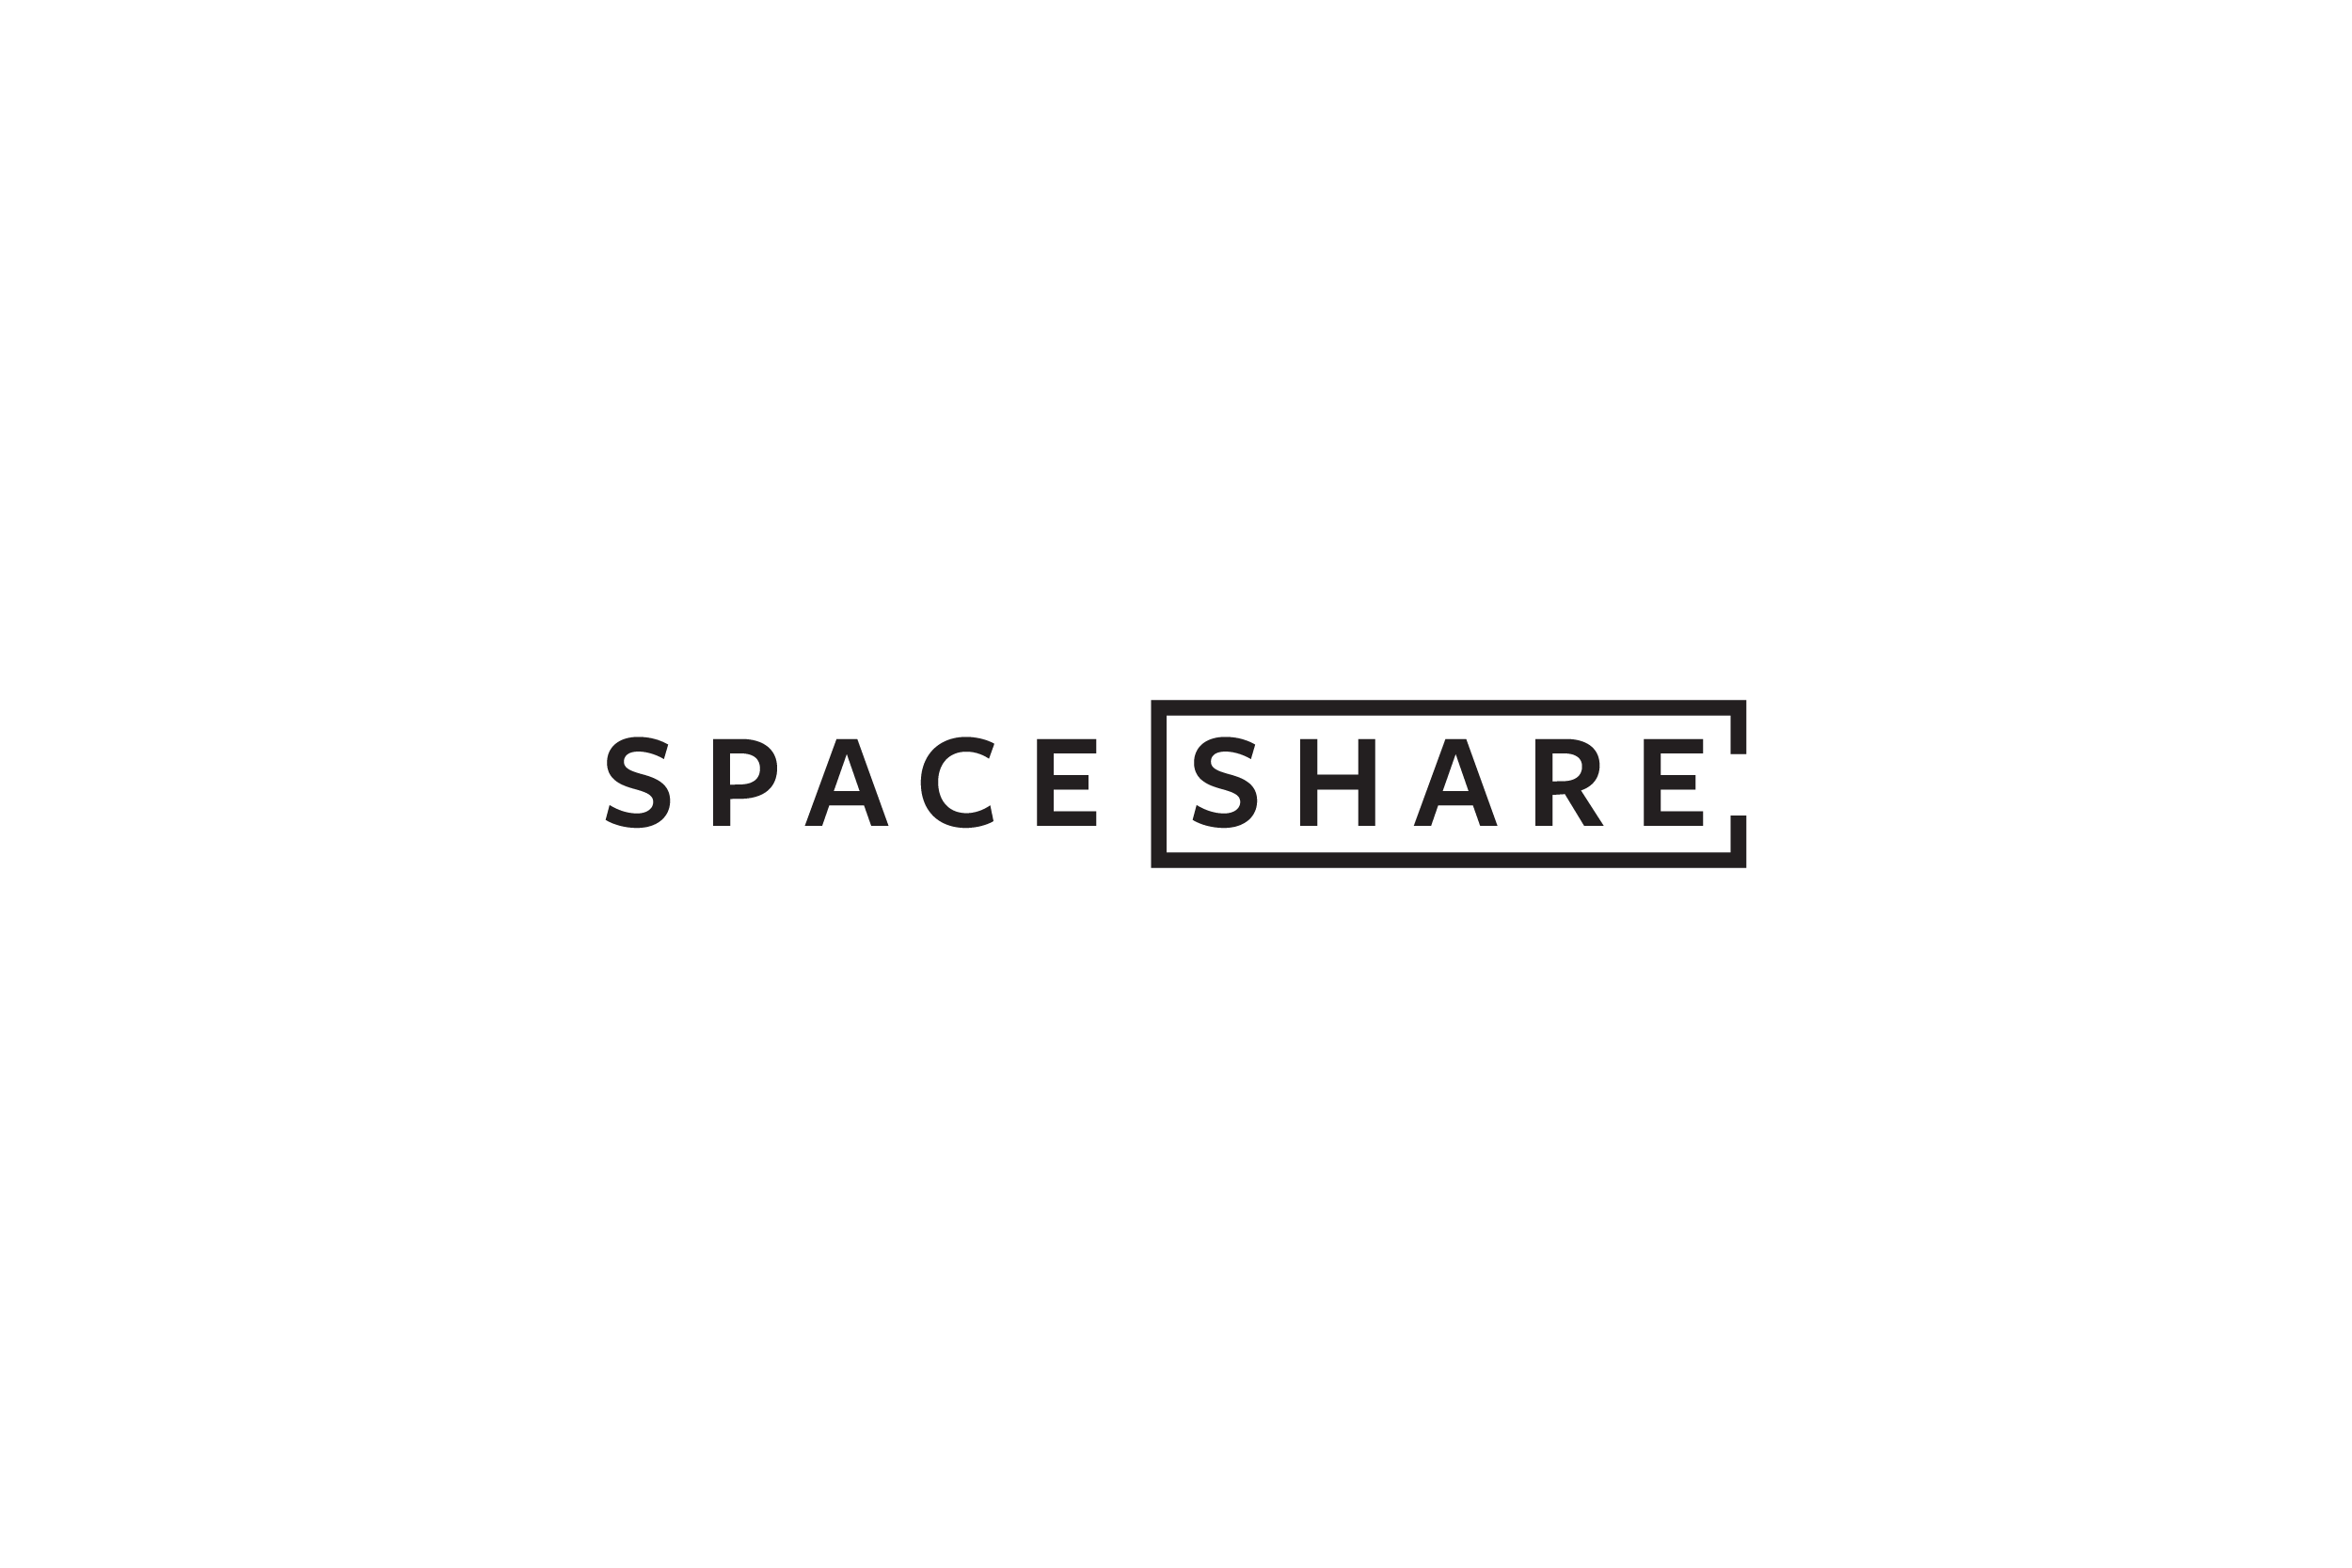 spaceshare.png